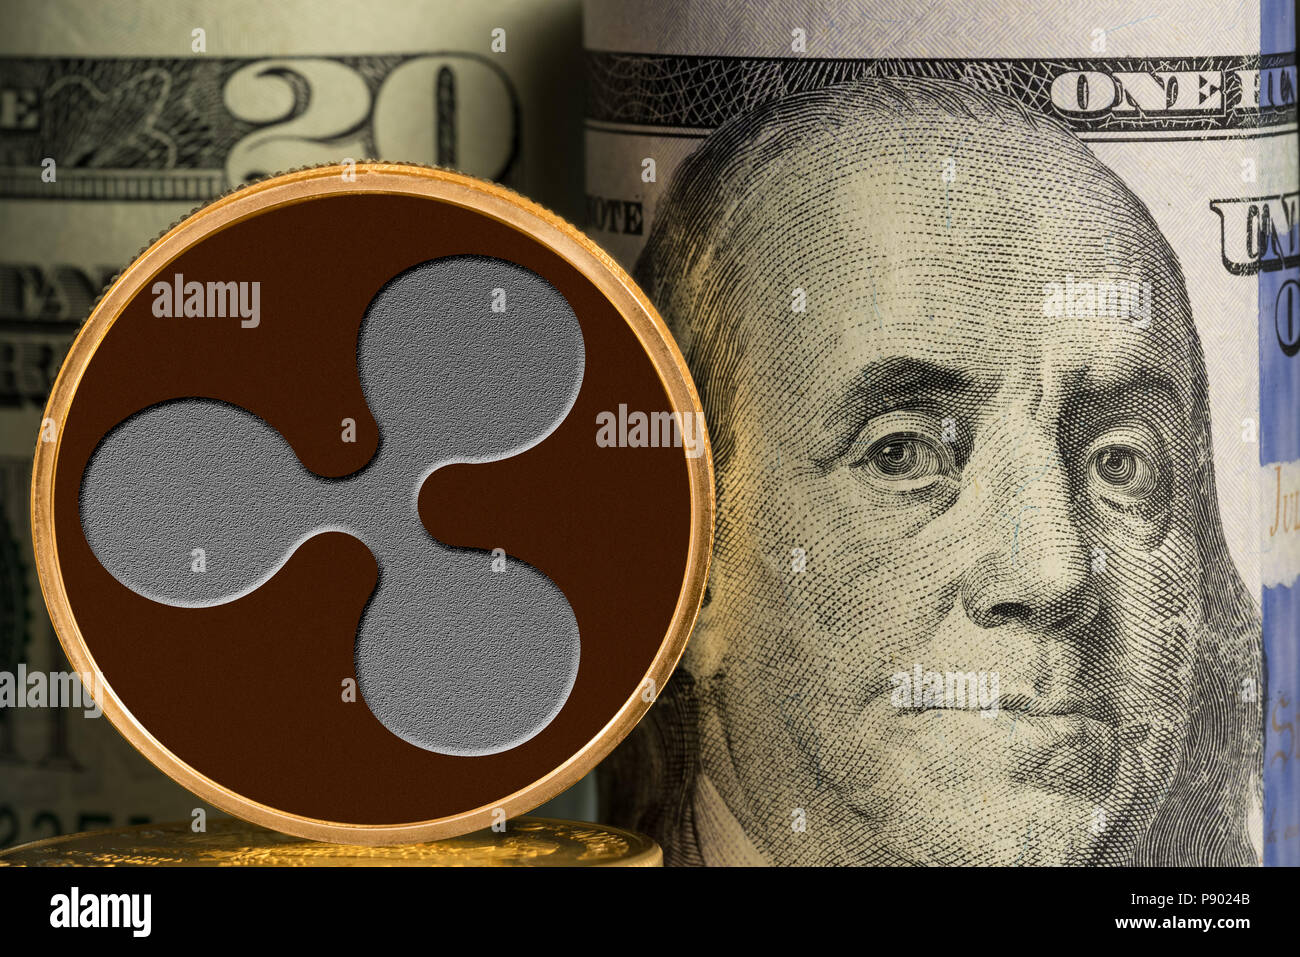 Single Ripple coin in front of bank rolls of US currency - Stock Image